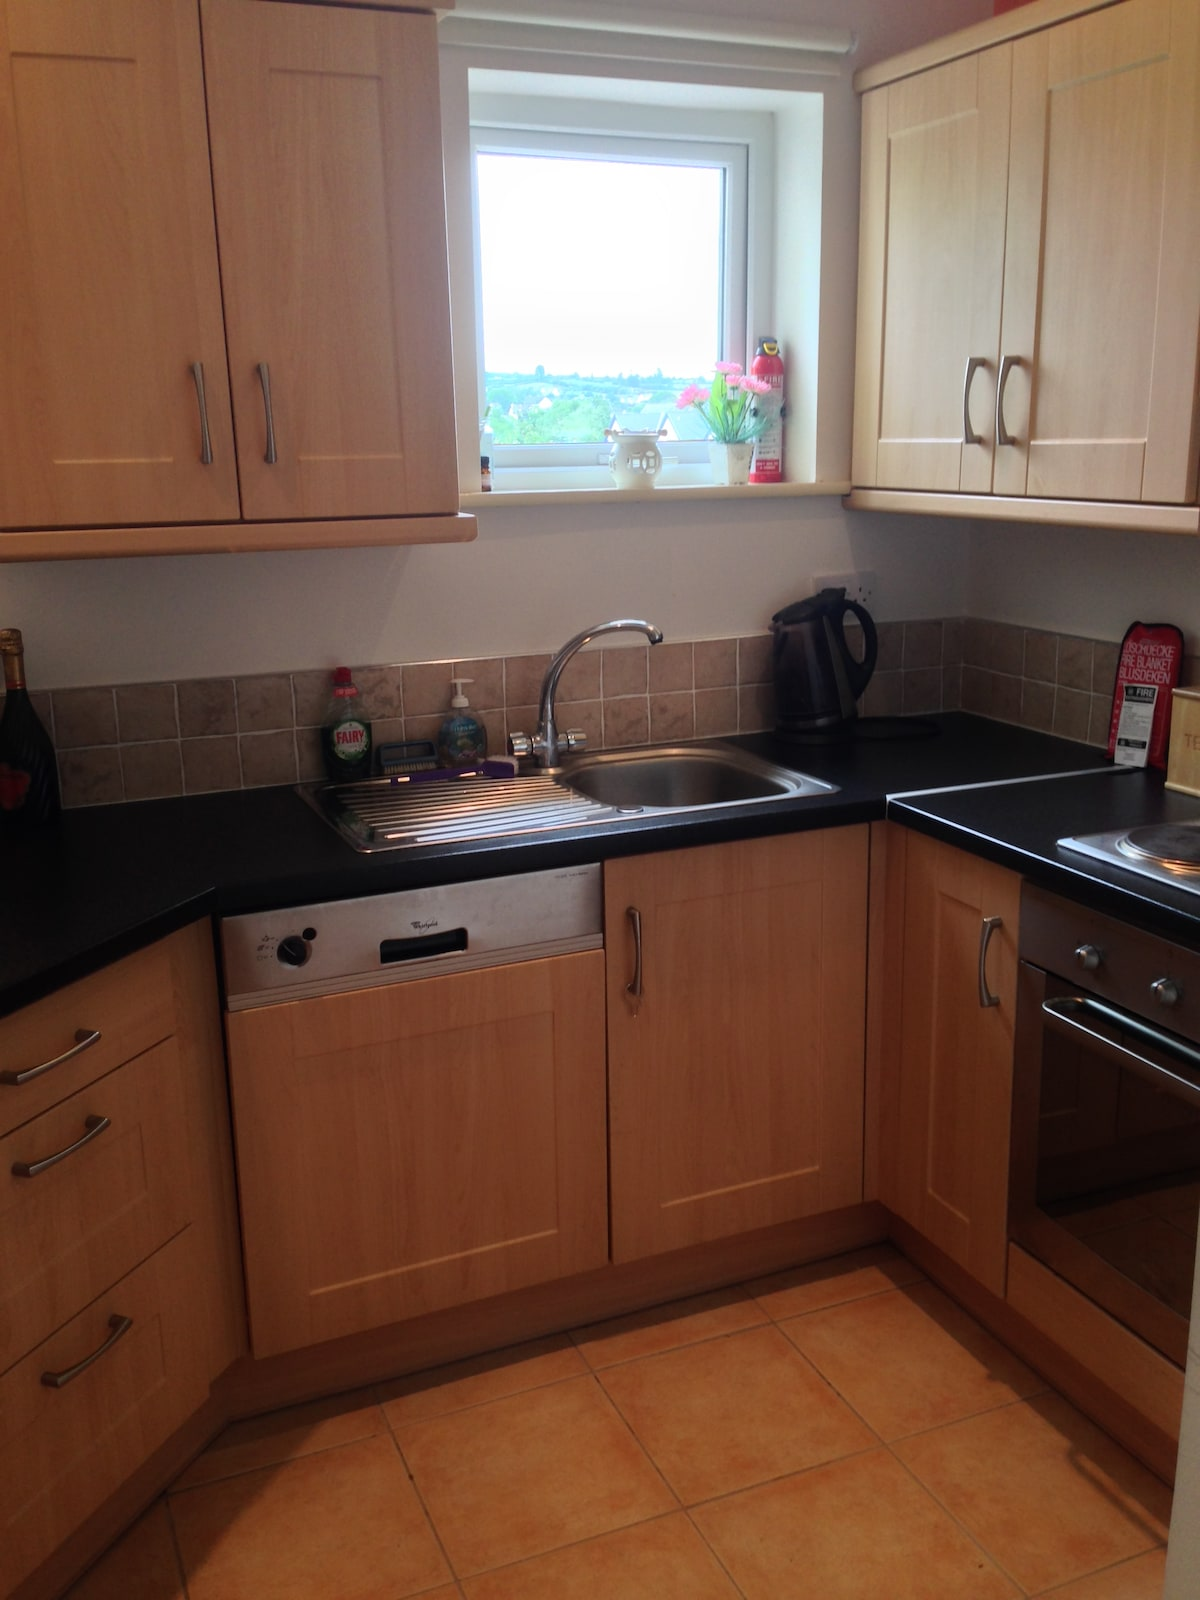 Kitchen, Oven, Electric hob, dish washer, washing machine/dryer. Microwave. Cutlery and place settings for 5